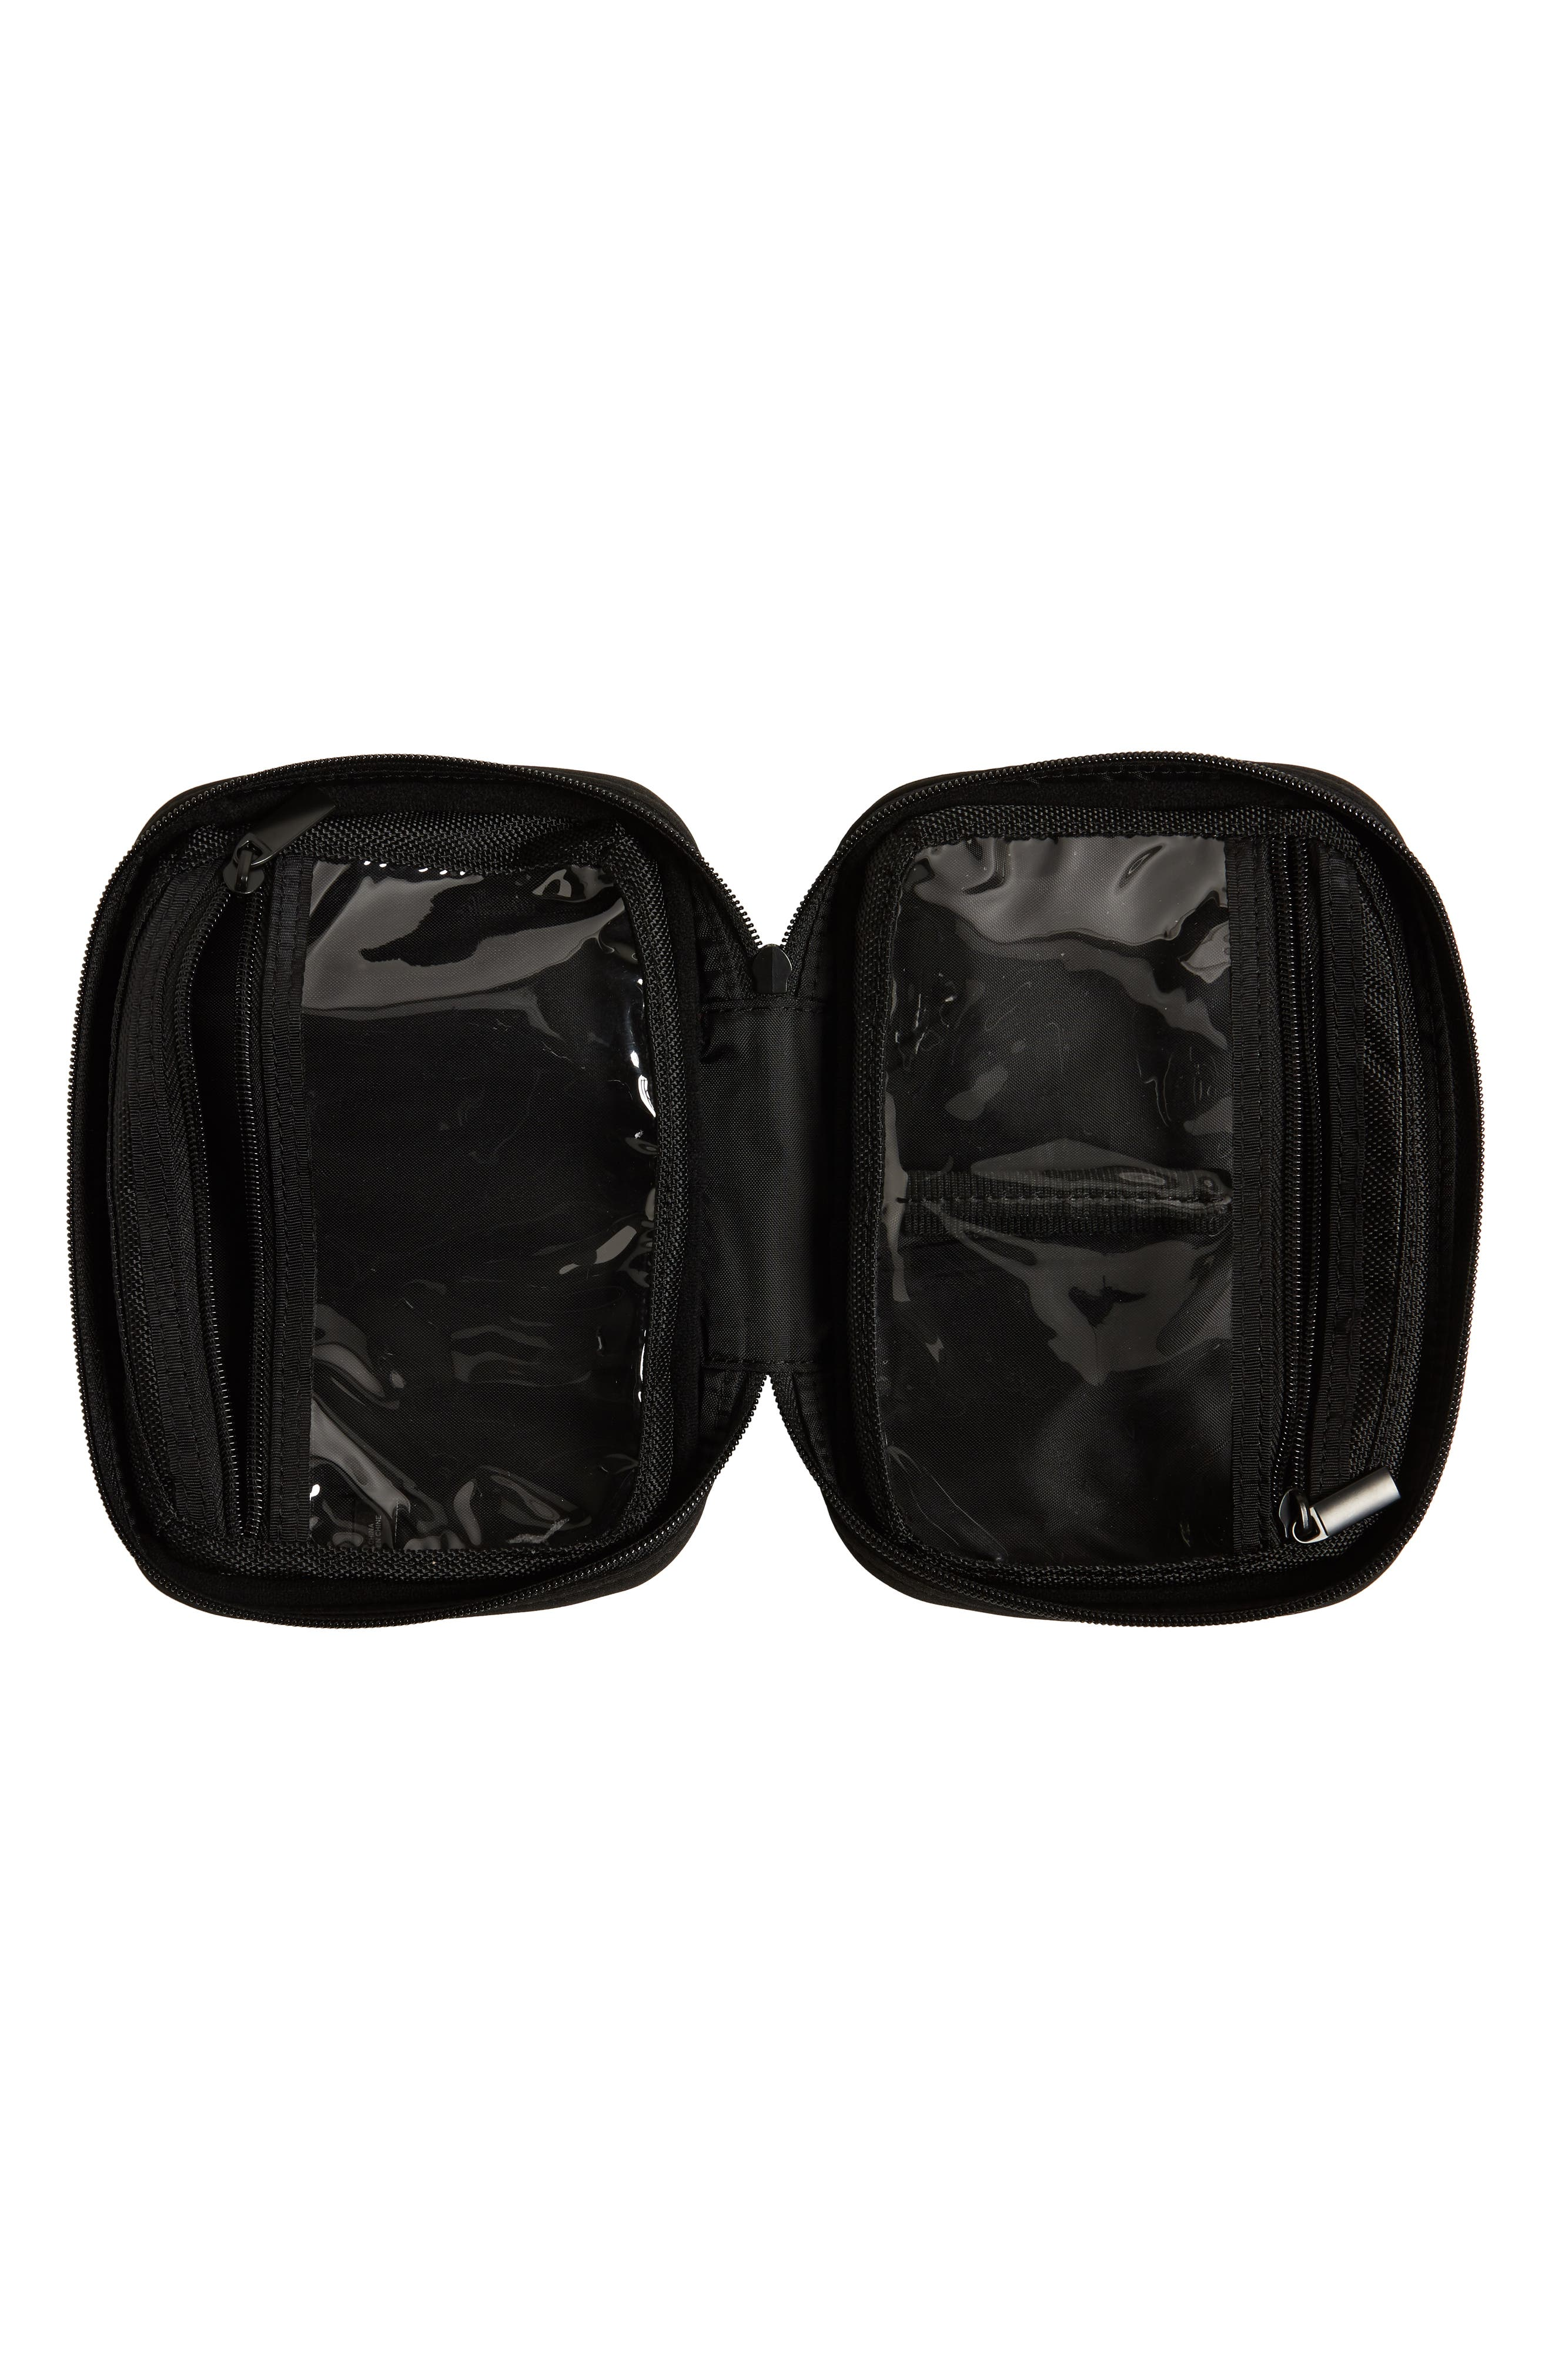 1556a6be9062 Neoprene Luggage & Travel Bags | Nordstrom